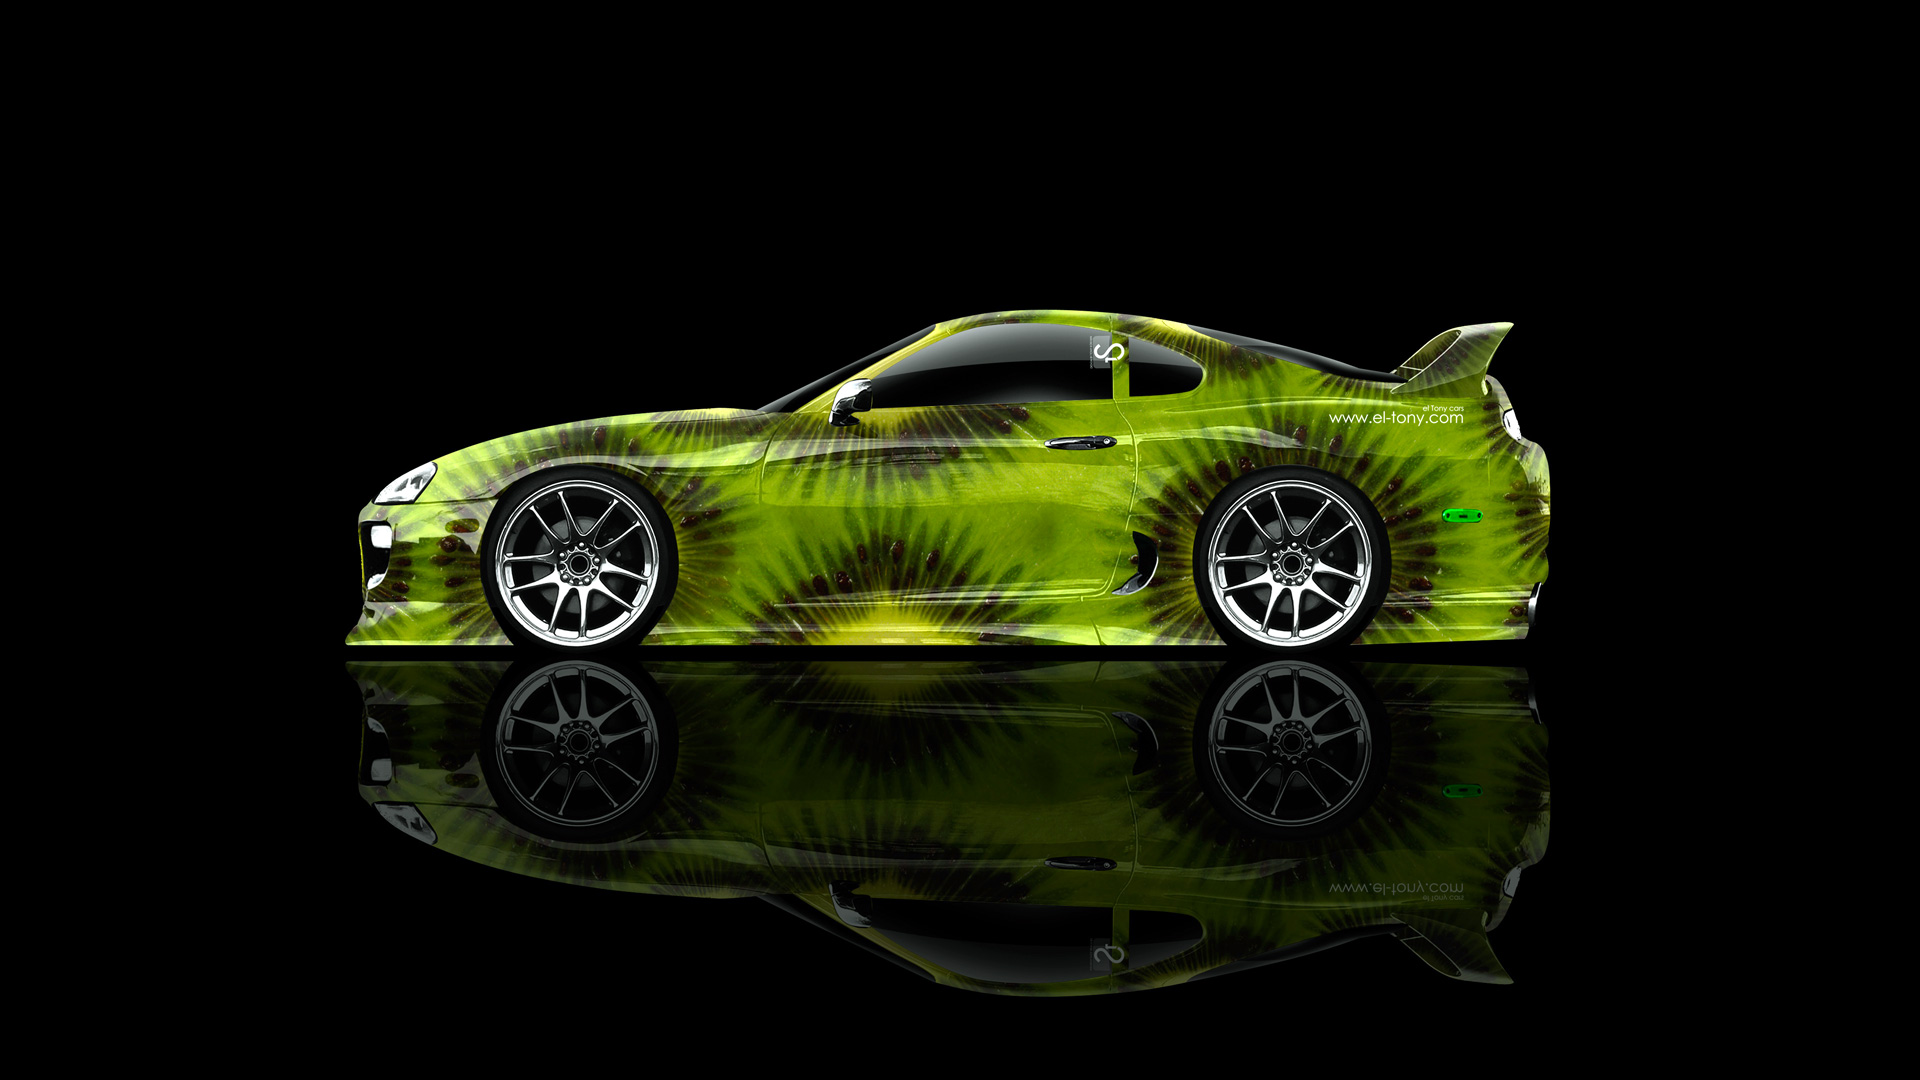 Toyota Supra JDM Side Kiwi Aerography Car 2014